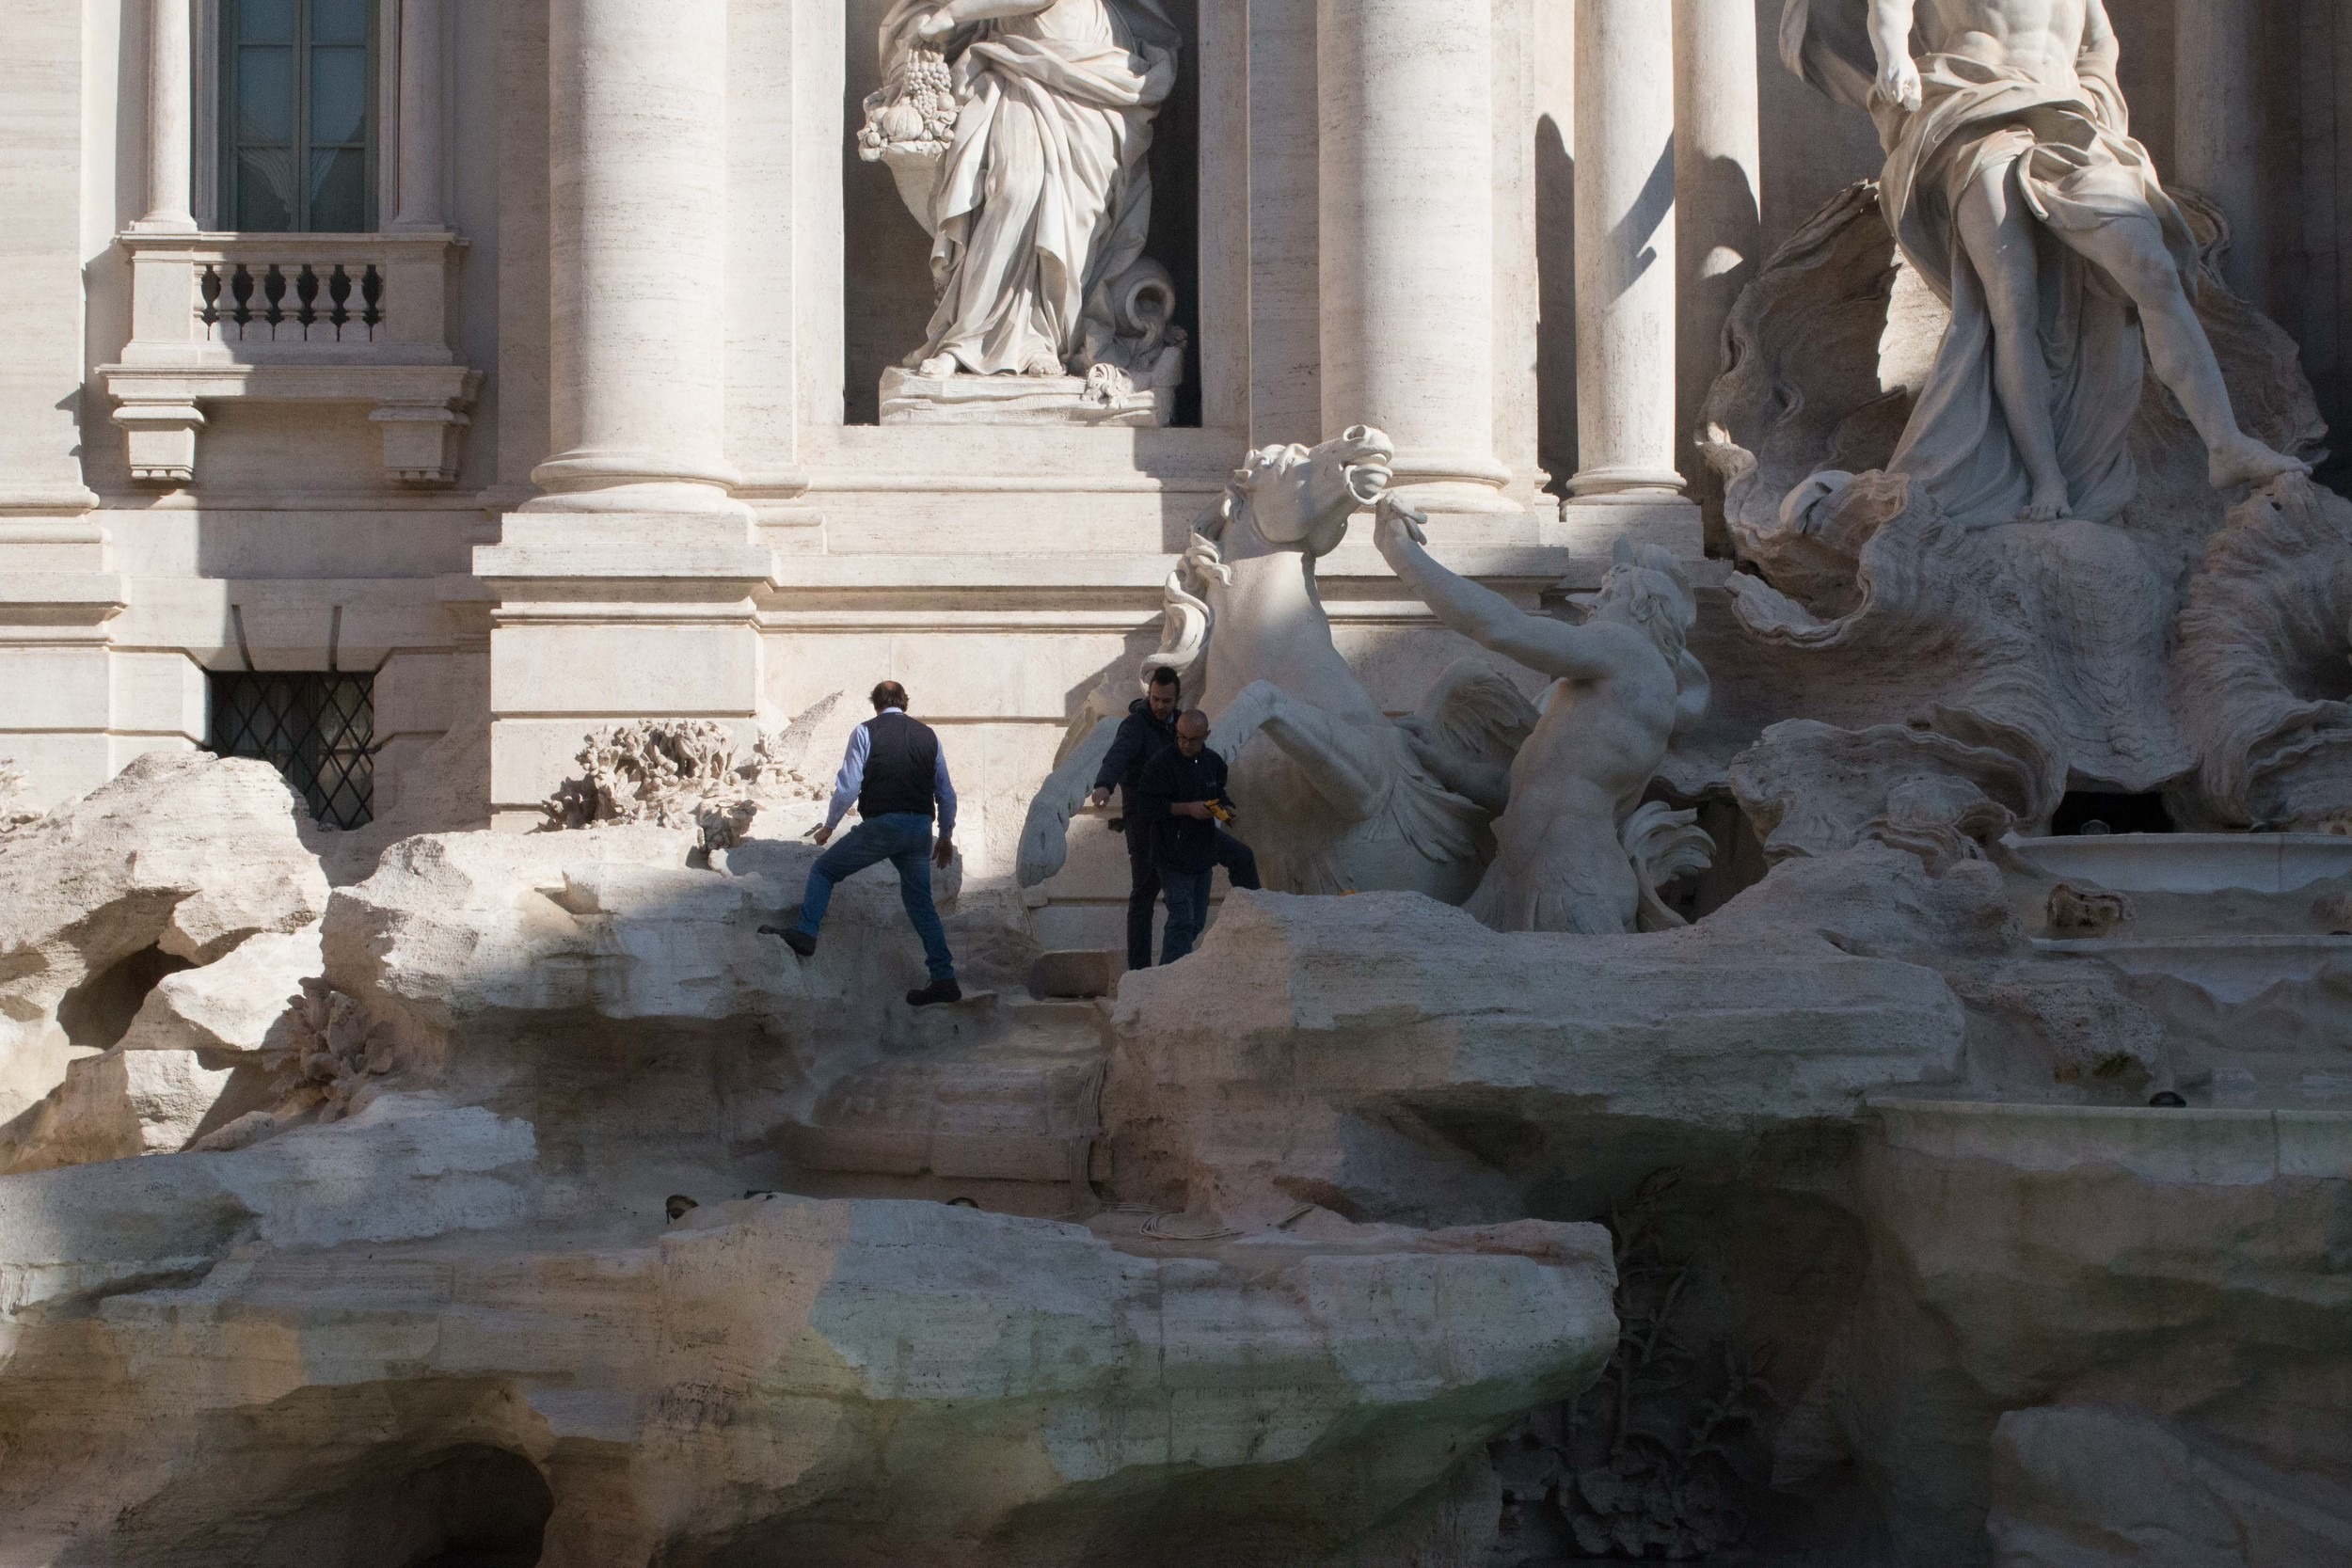 The rocks were mined from the Tiber river for use in the fountain